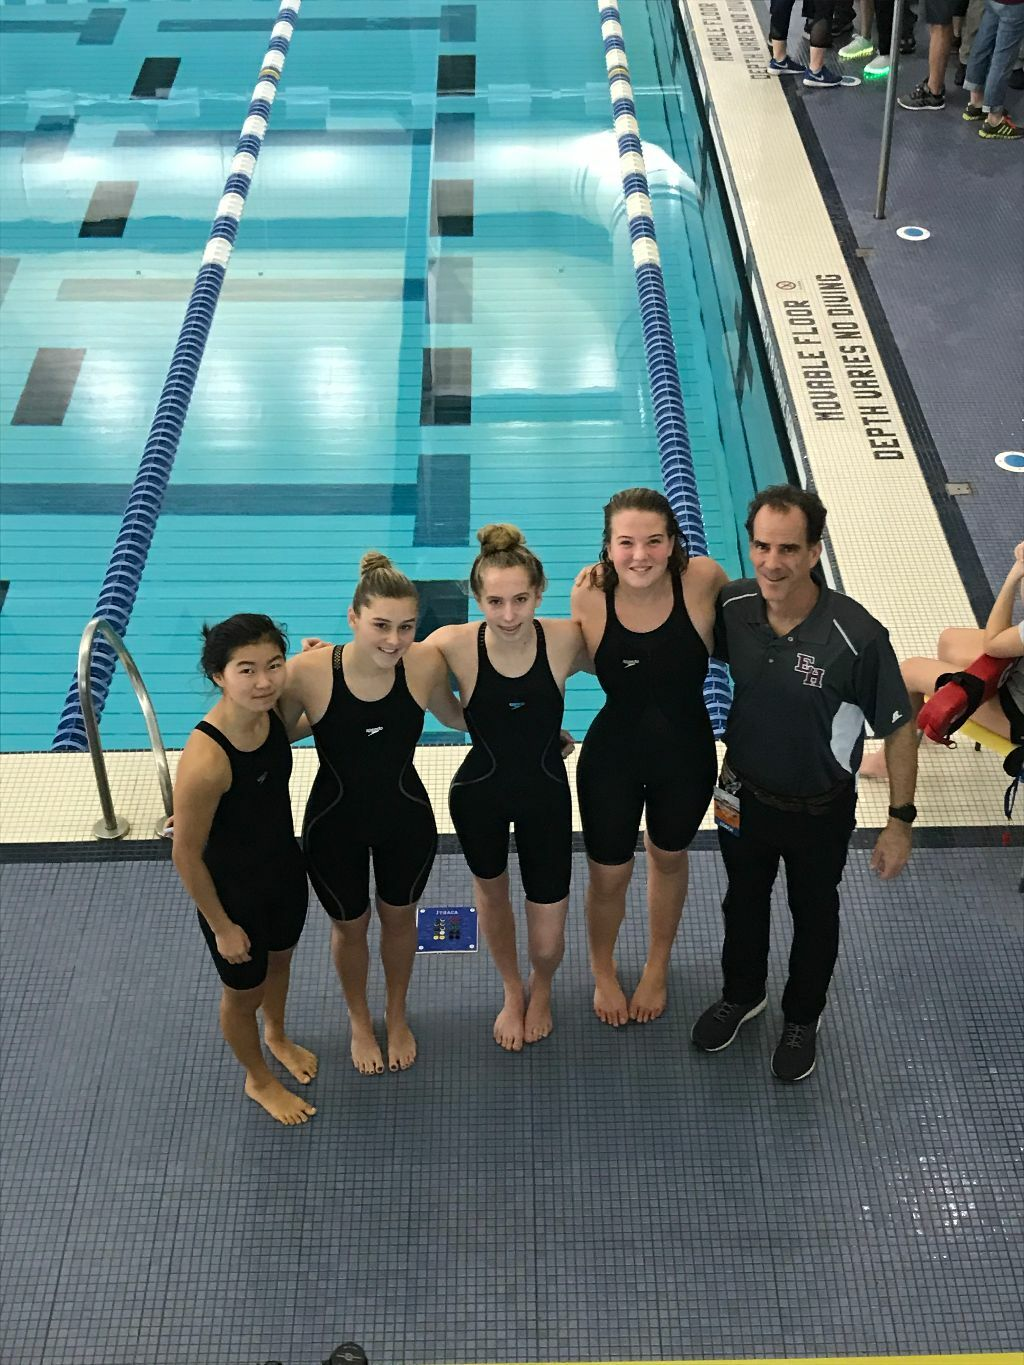 Lady Bonackers, from left to right, Darcy McFarland, Sophia Swanson, Jane Brierley and Julia Brierley and head coach Craig Brierley.